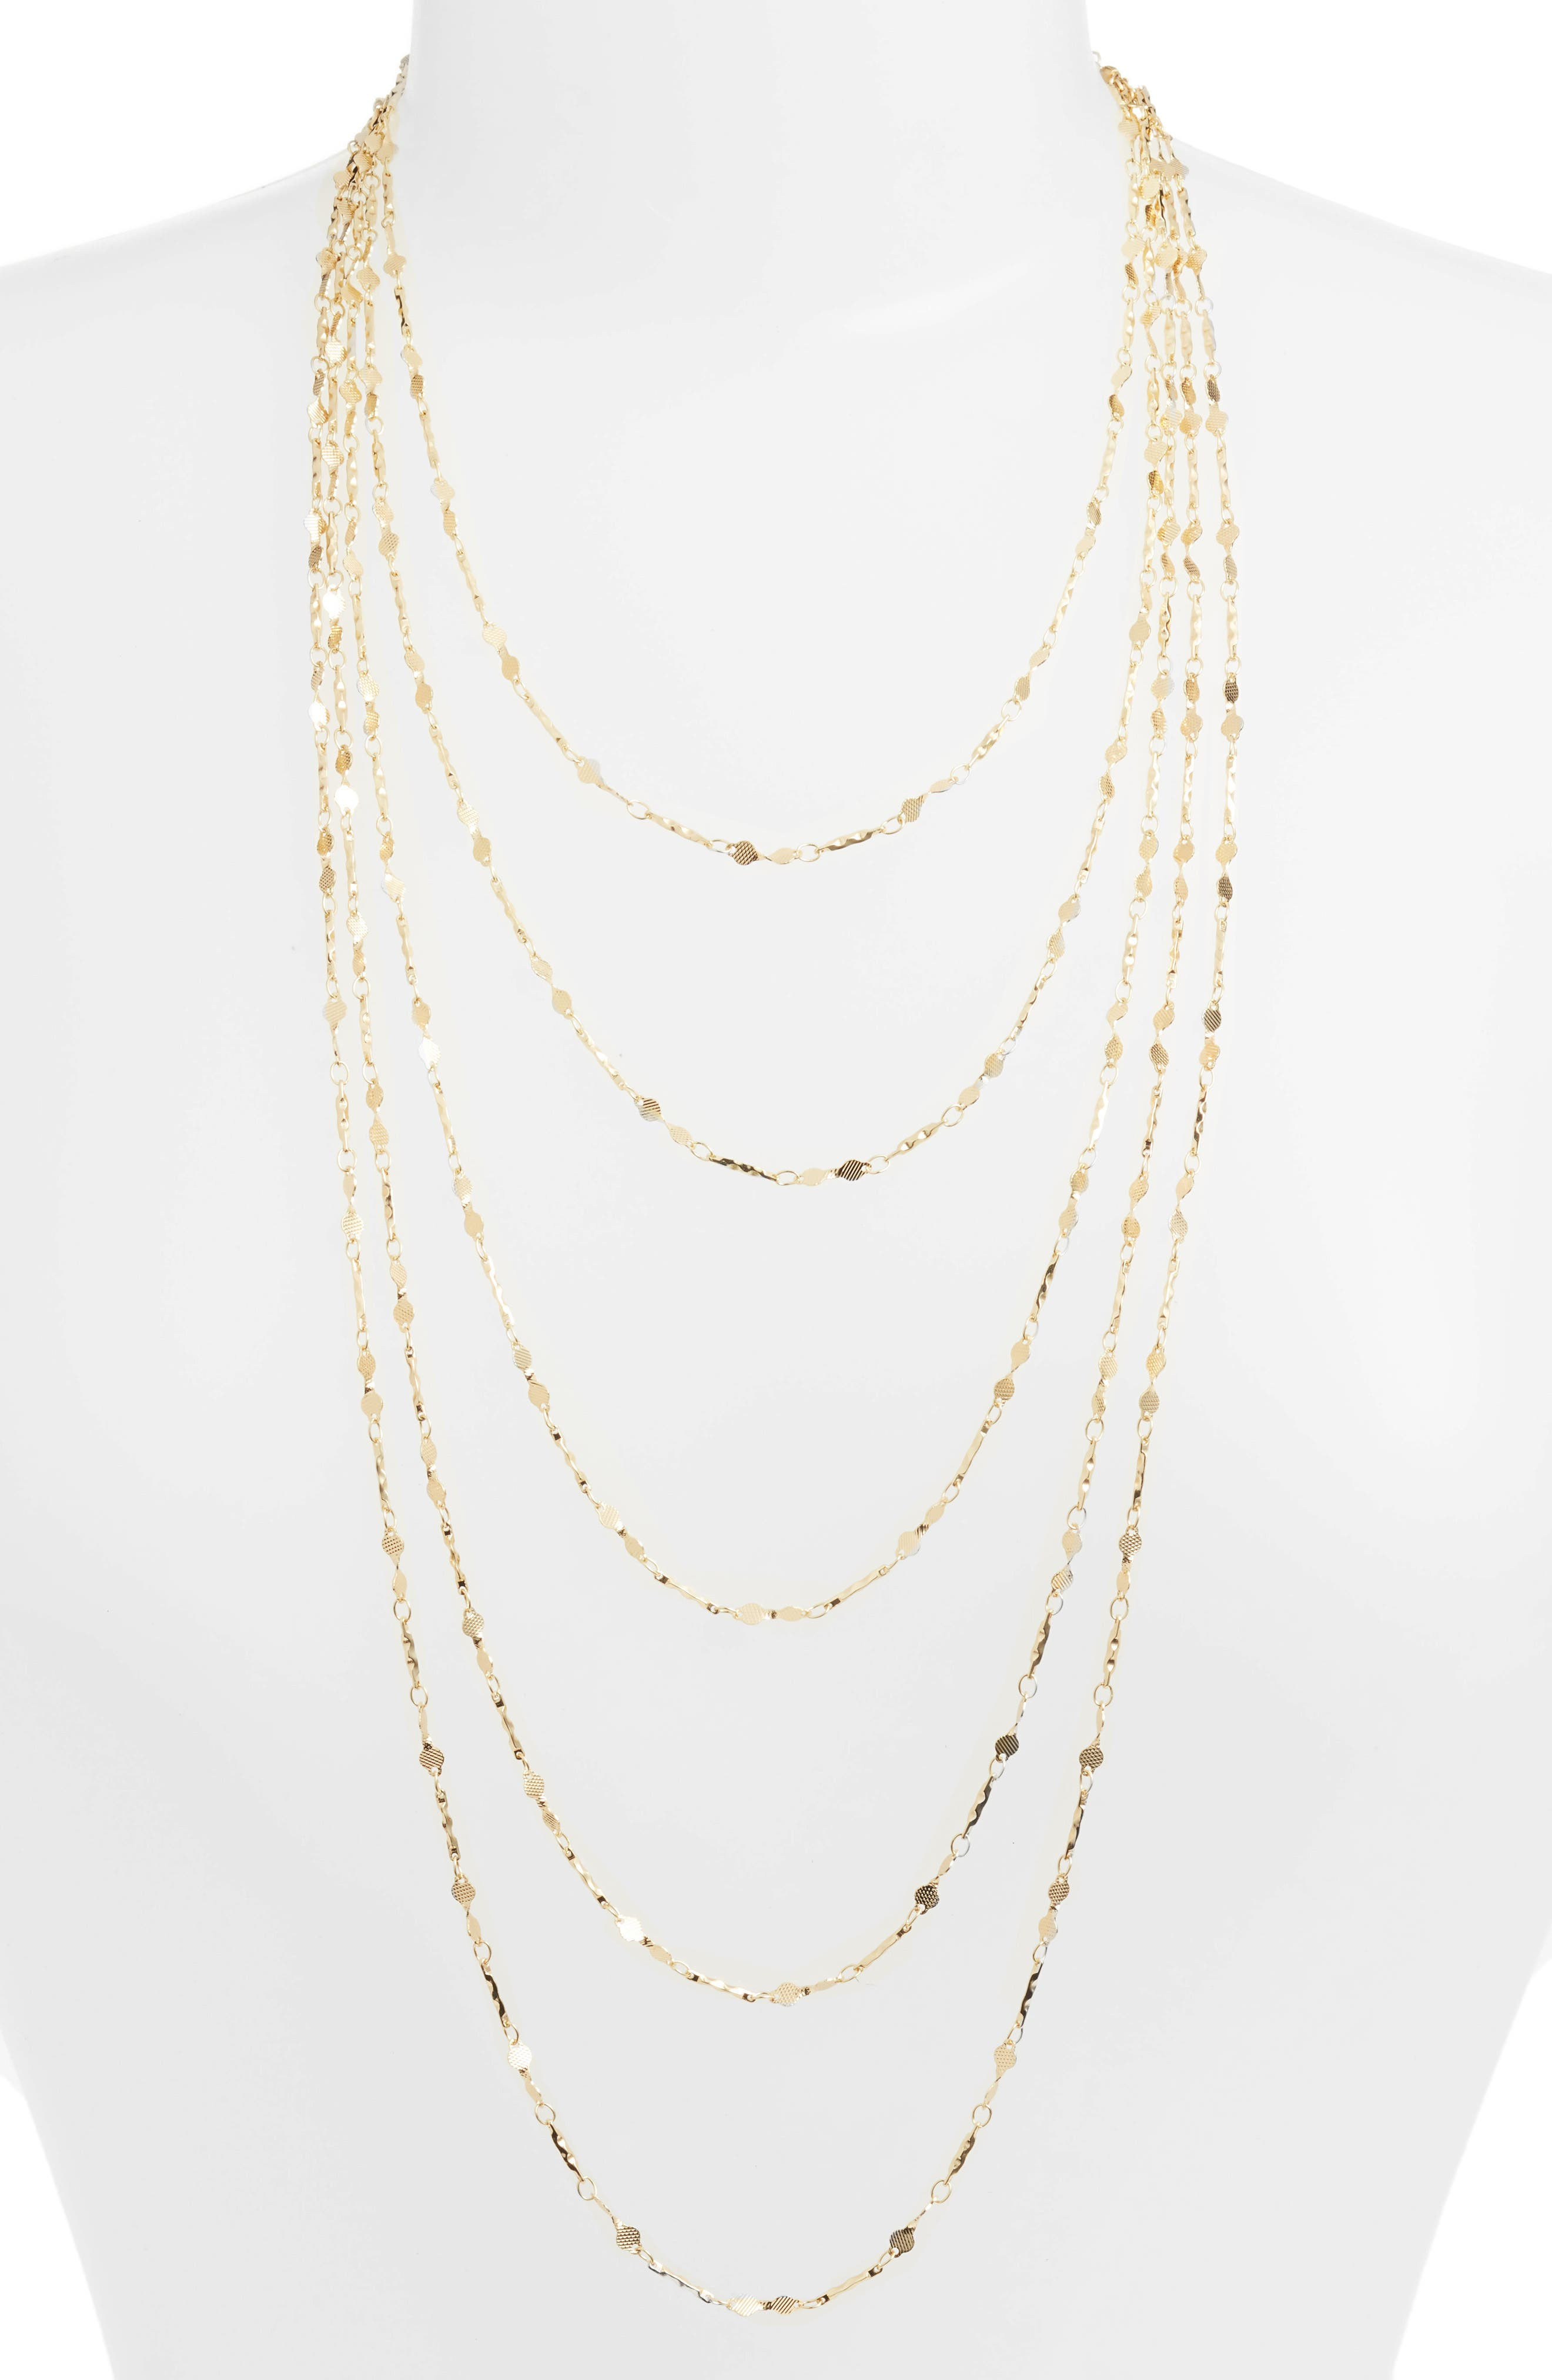 5-Strand Necklace,                         Main,                         color, Gold